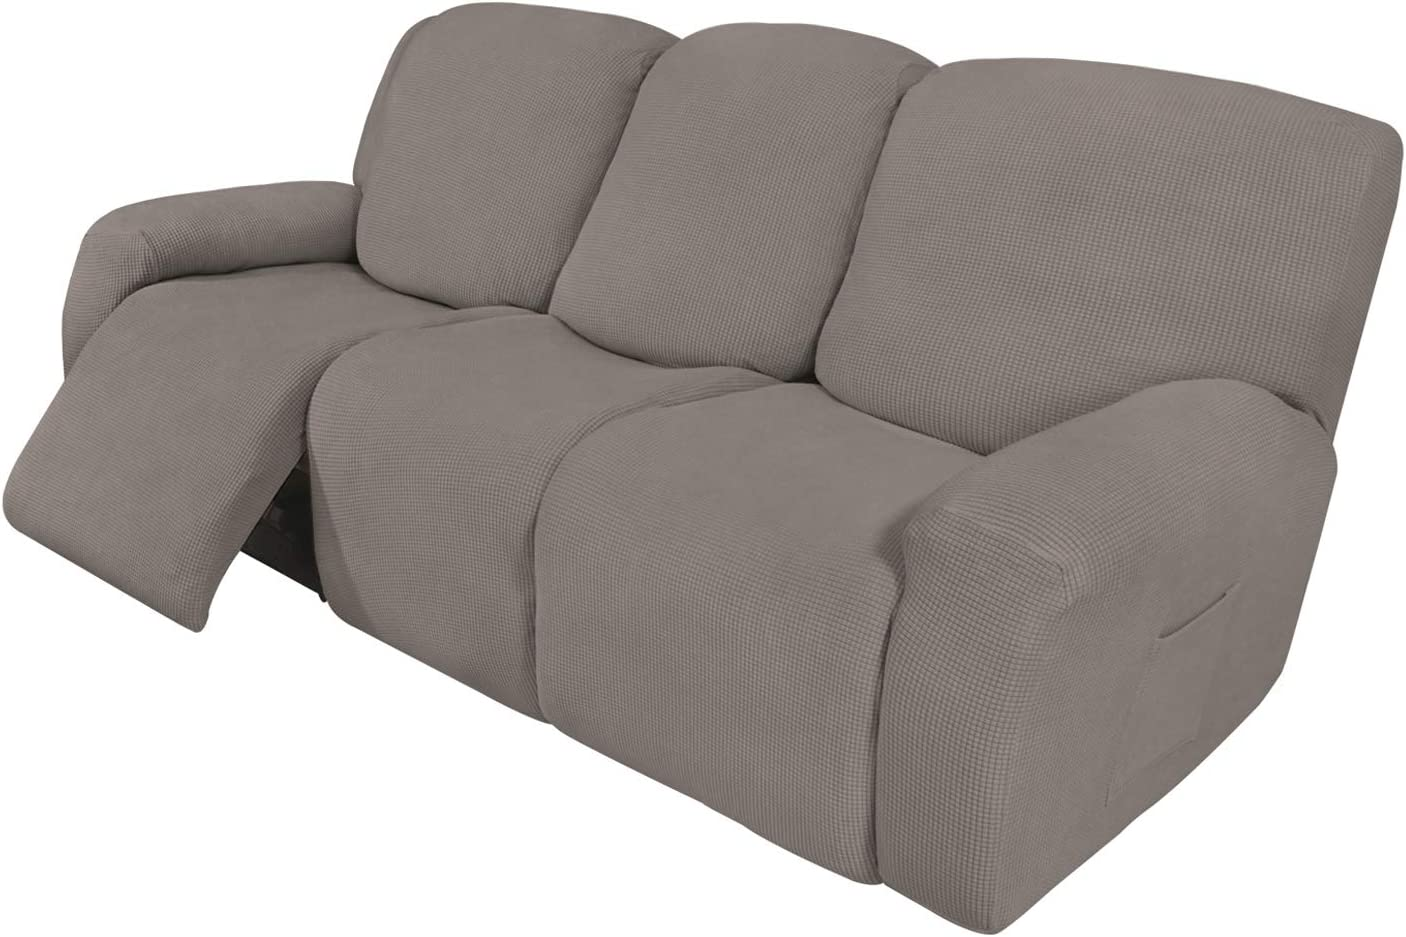 Easy-Going 8 Pieces Recliner Sofa Stretch Sofa Slipcover Sofa Cover Furniture Protector Couch Soft with Elastic Bottom Kids, Spandex Jacquard Fabric Checks Taupe